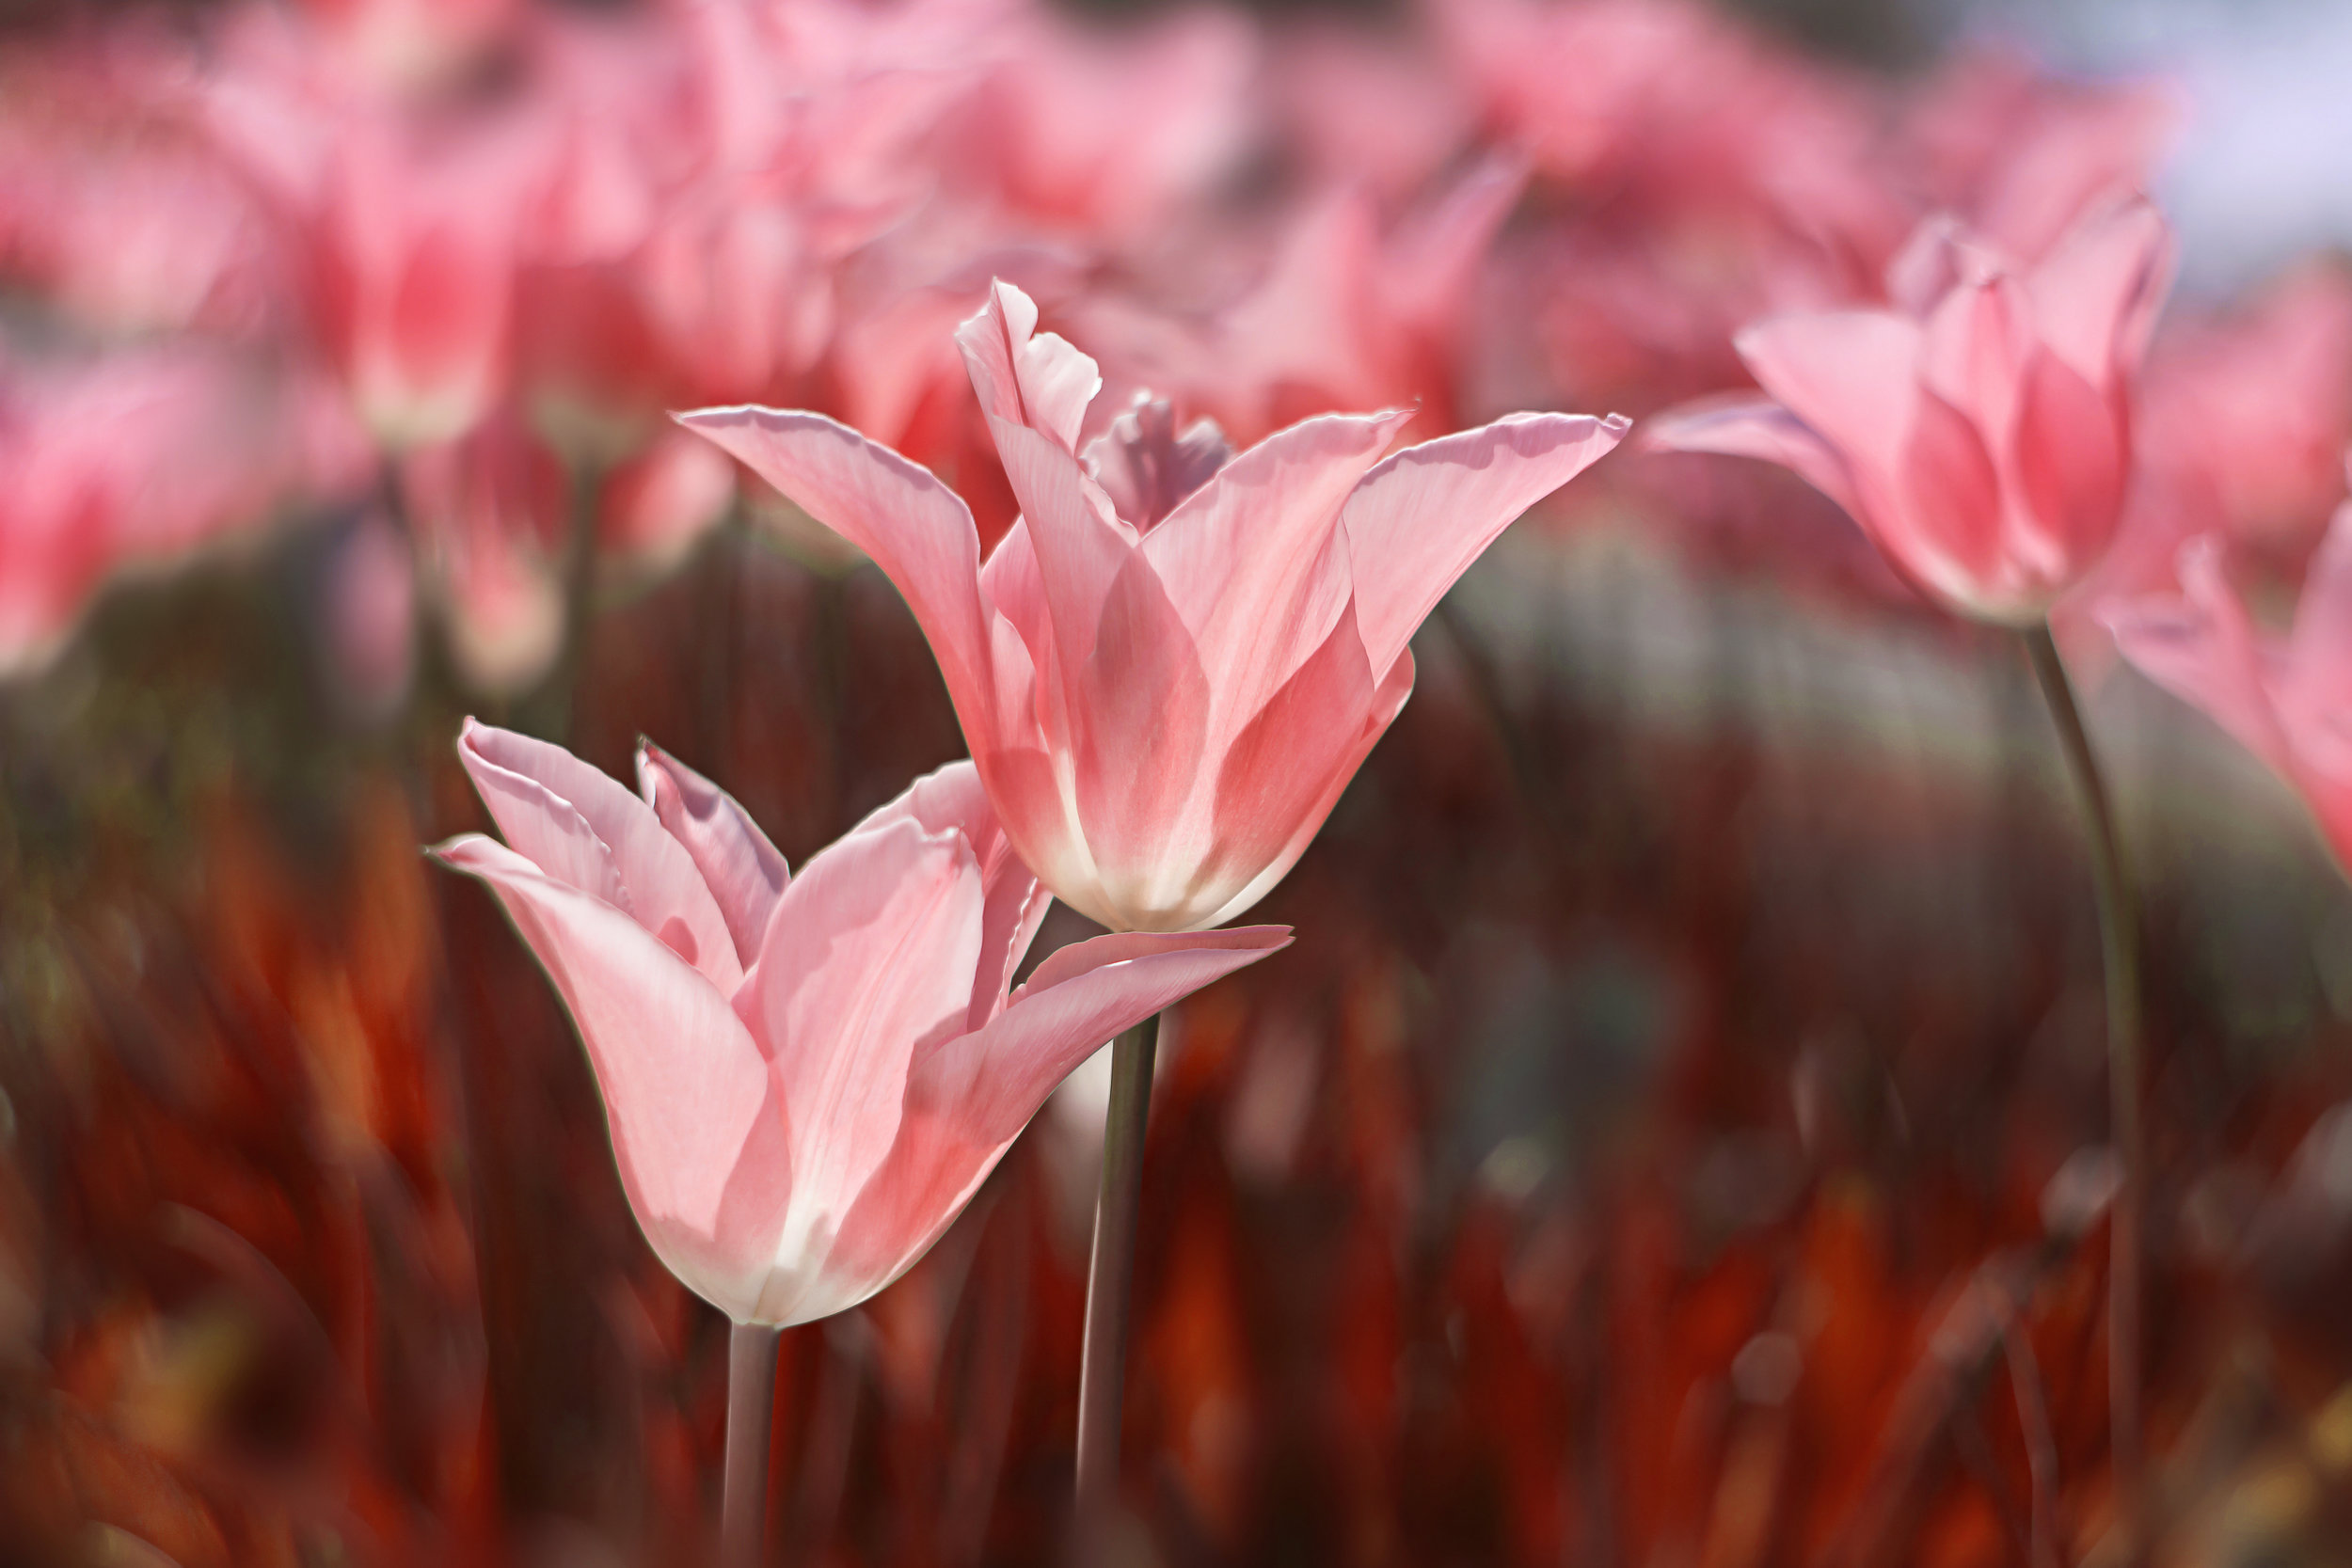 Lily-flowered